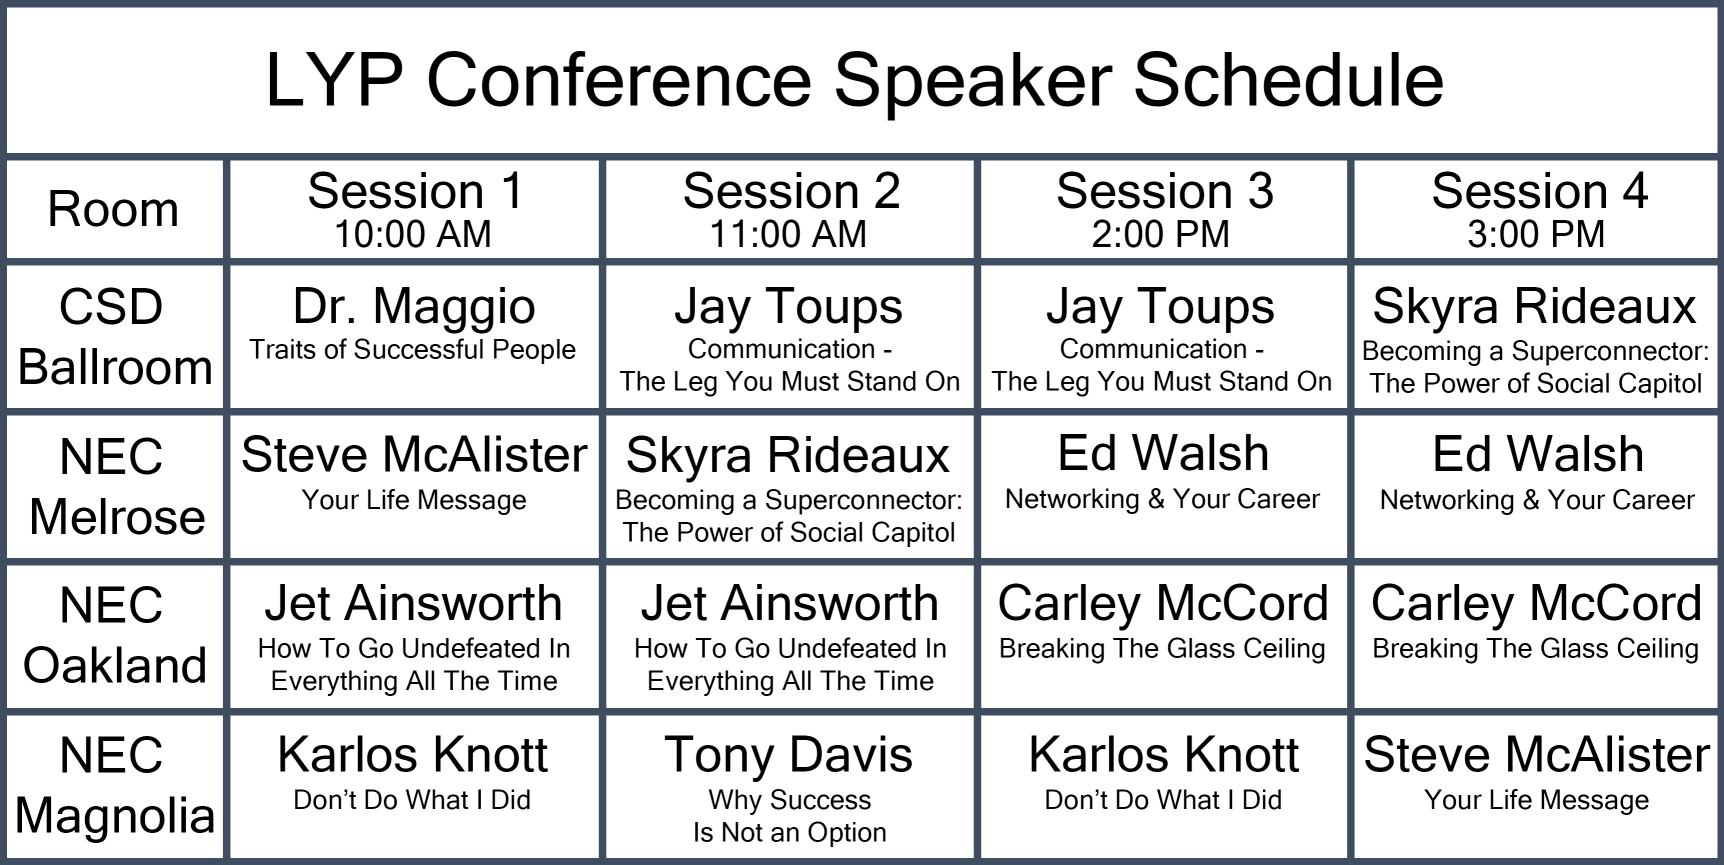 LYP-Conference-Speaker-Schedule-with-description2-w1724.png